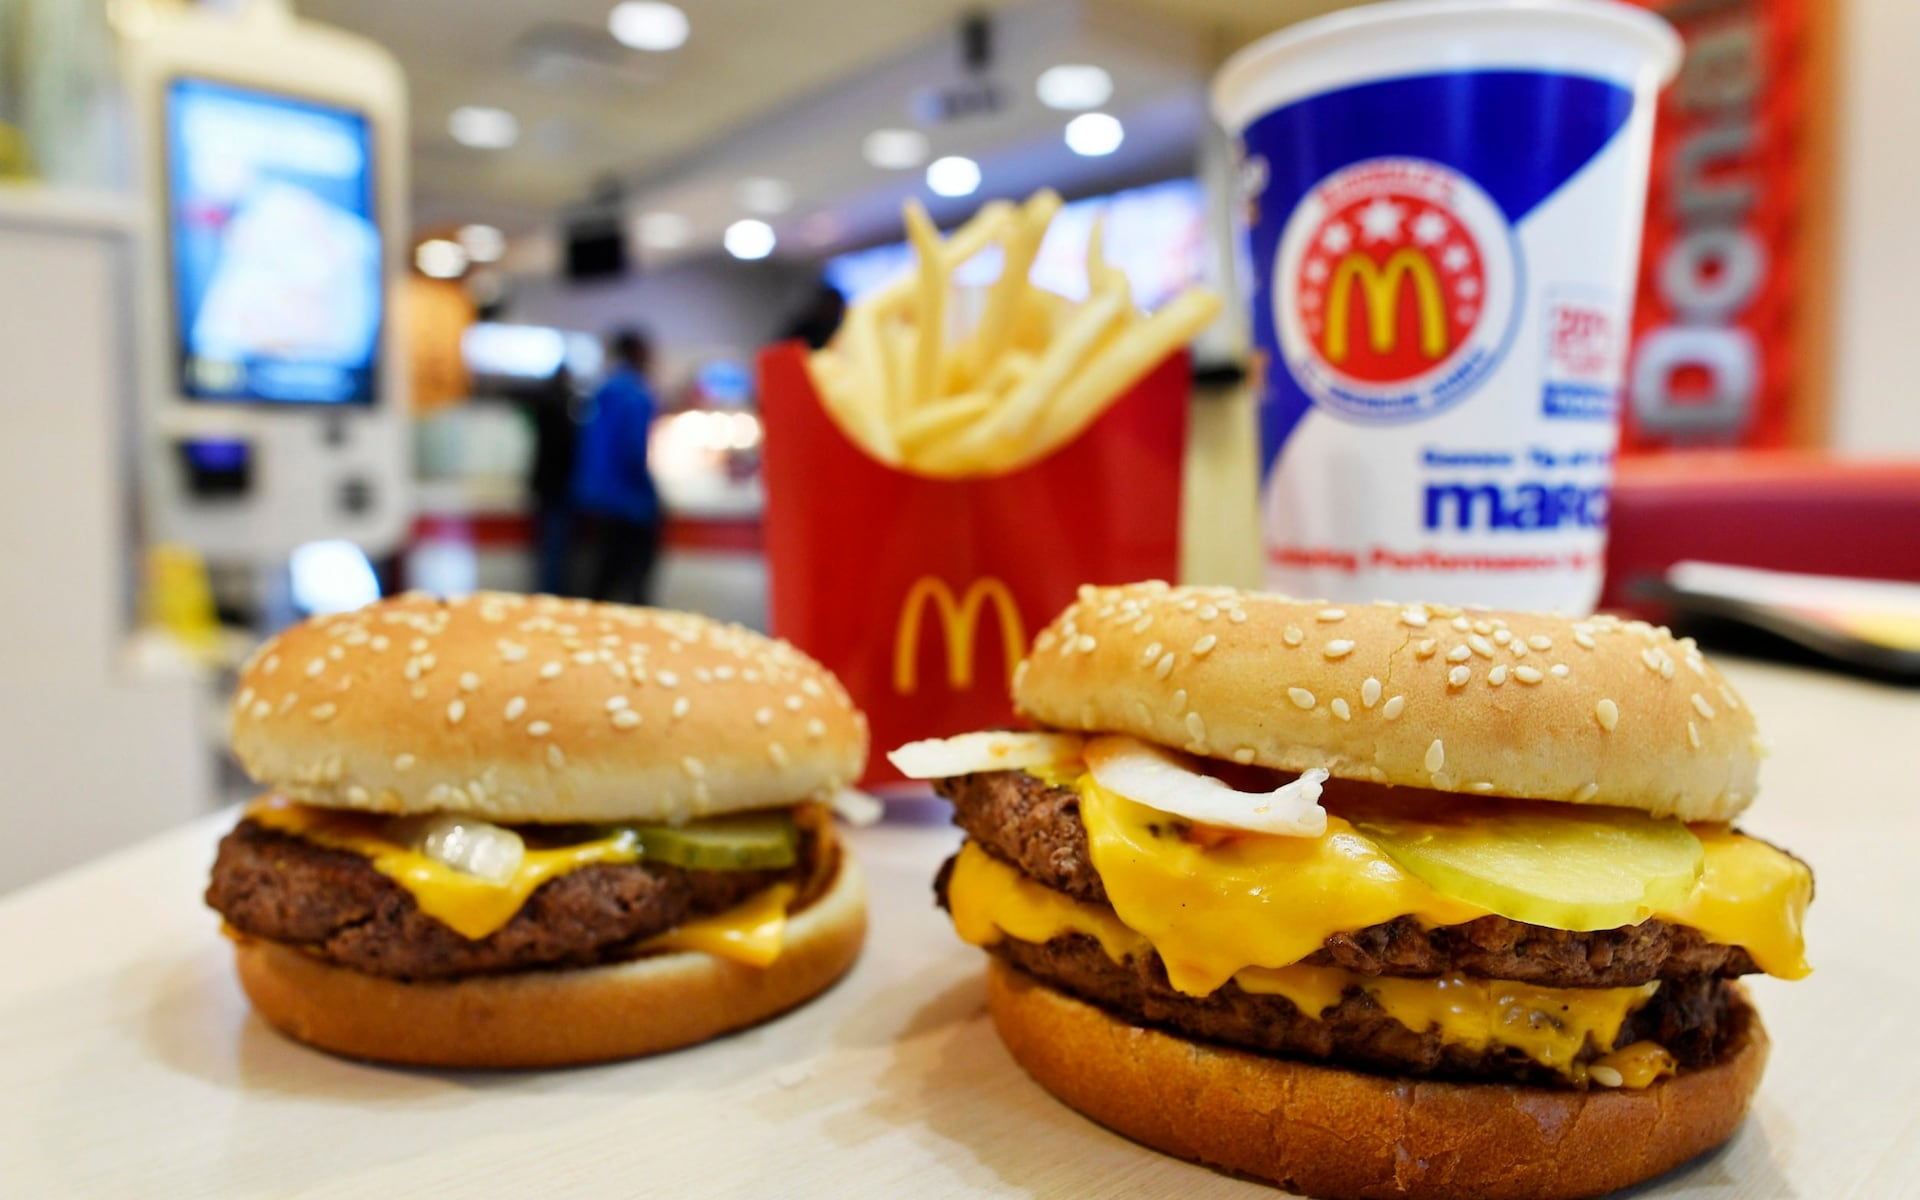 Soccer Team Being Investigated After Bribing Players with McDonald's